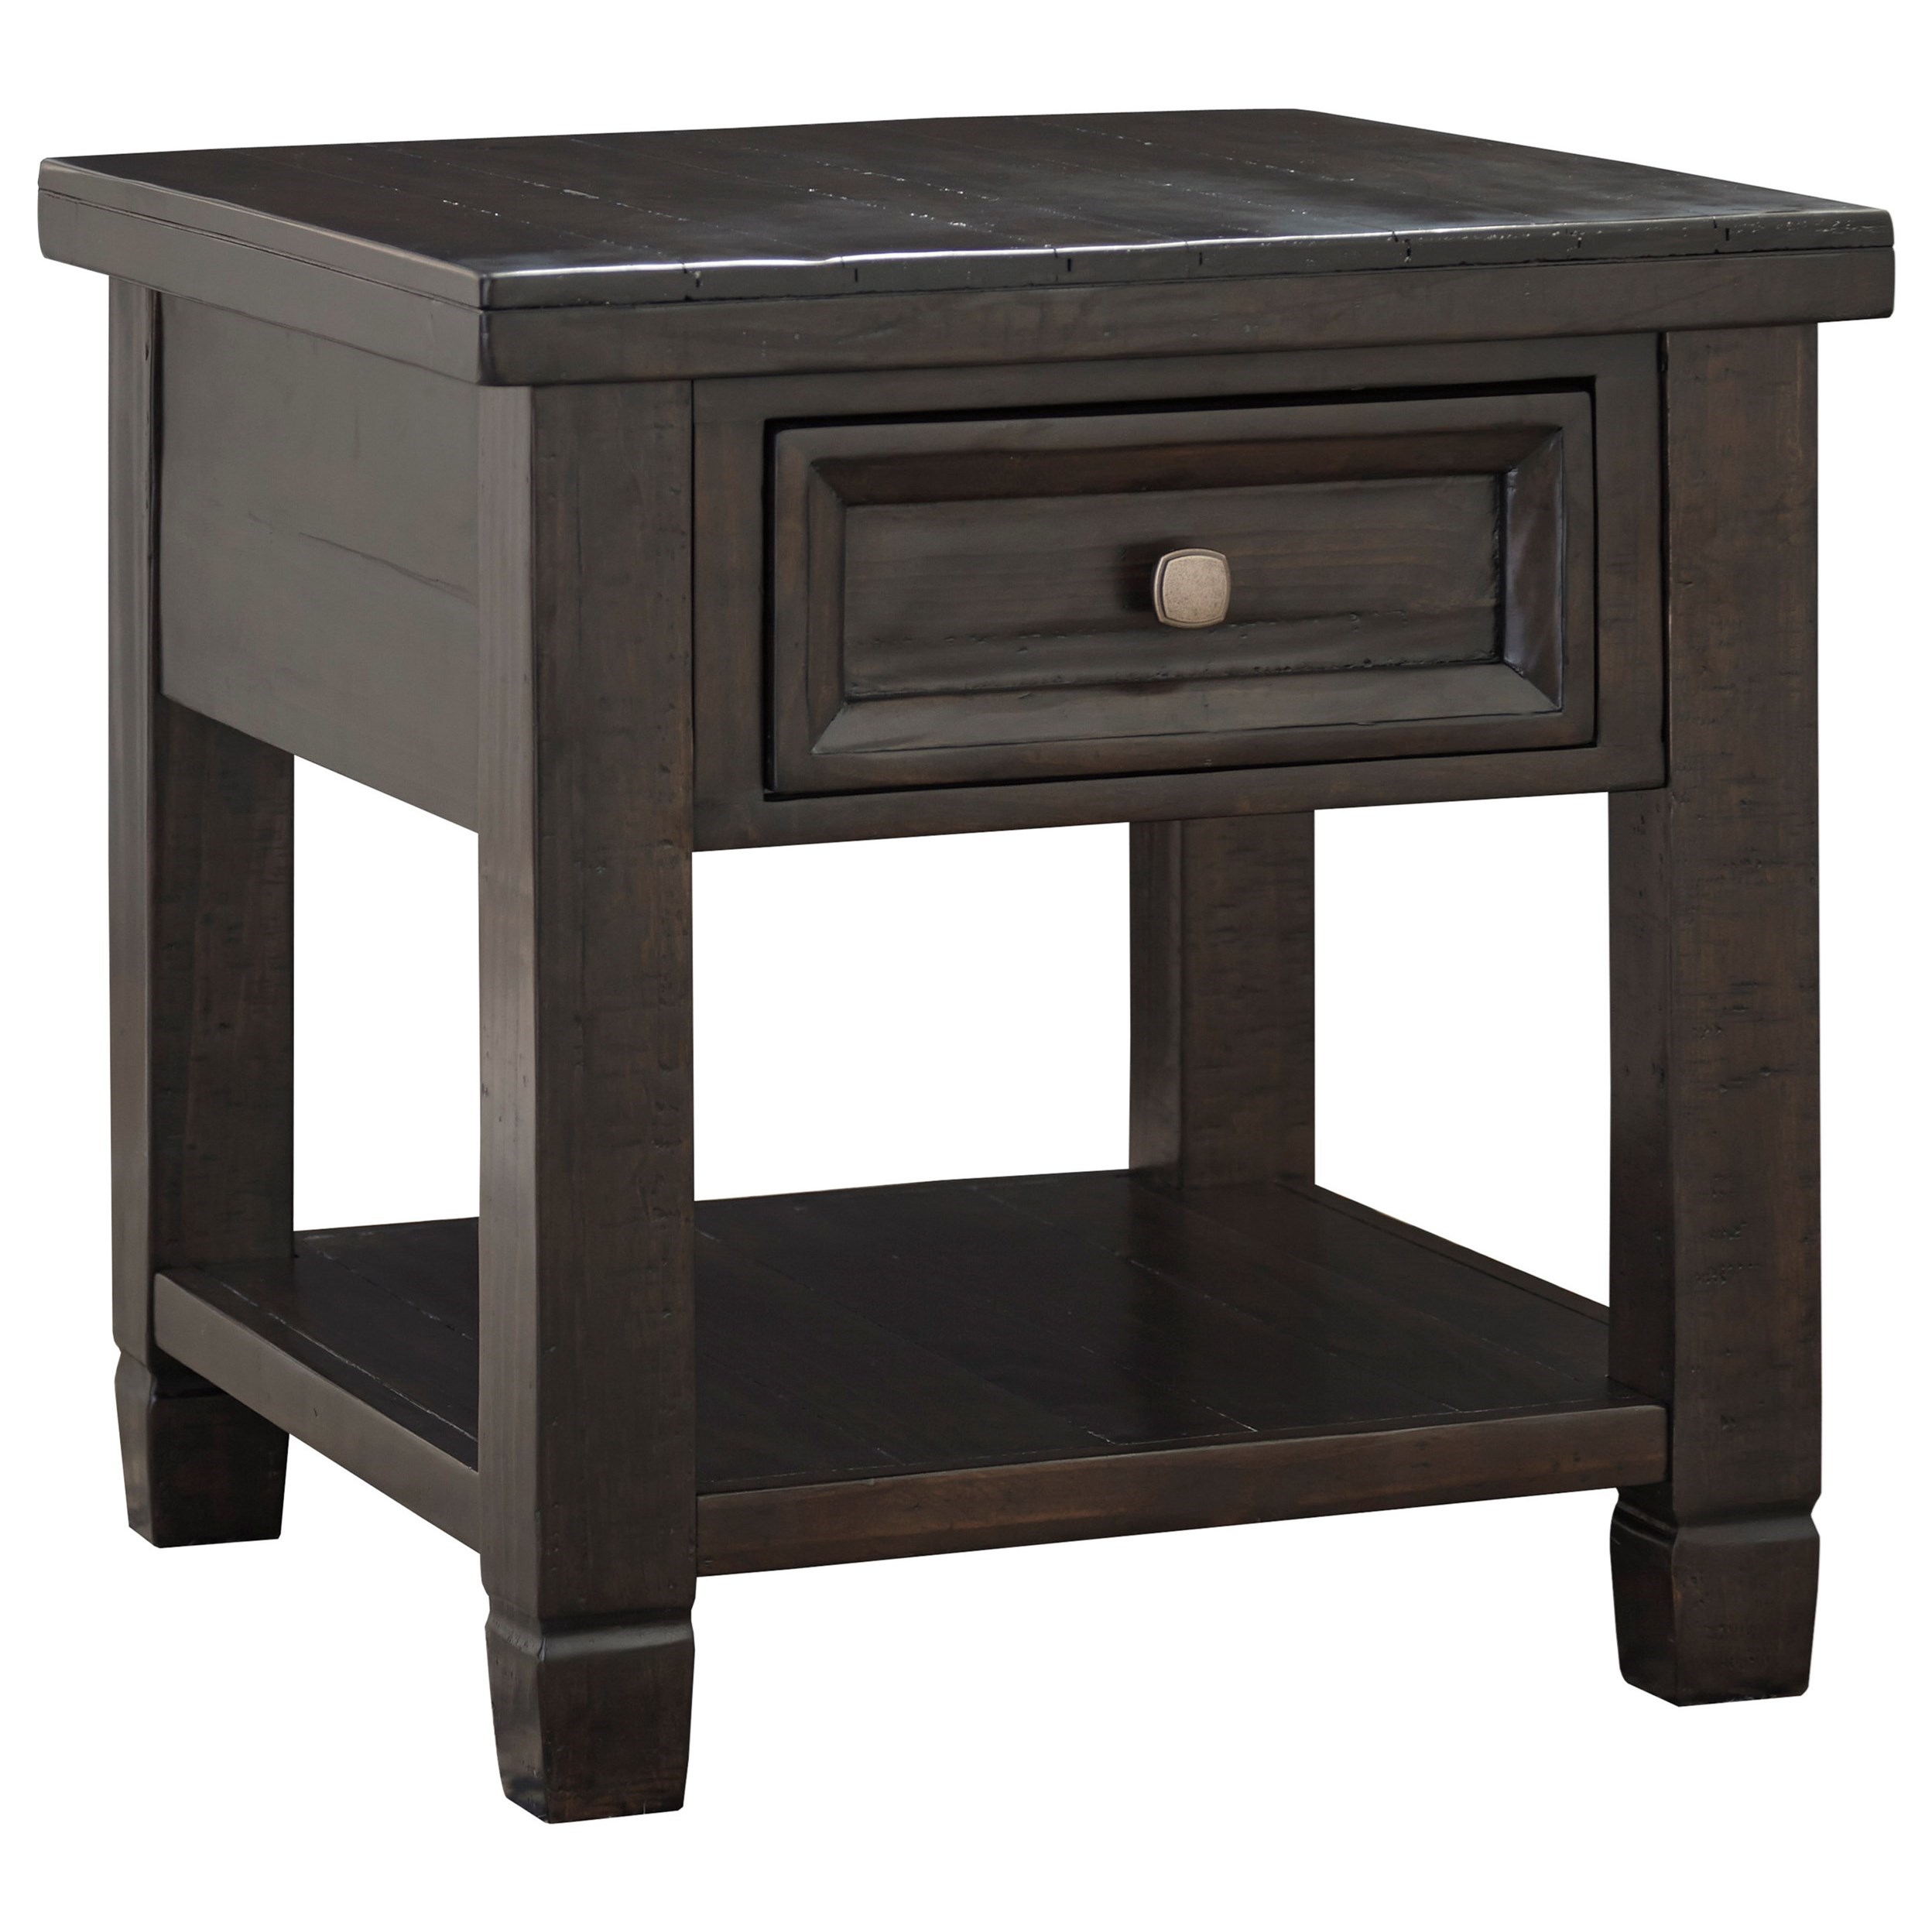 Signature Design by Ashley Townser Rectangular End Table - Item Number: T895-3